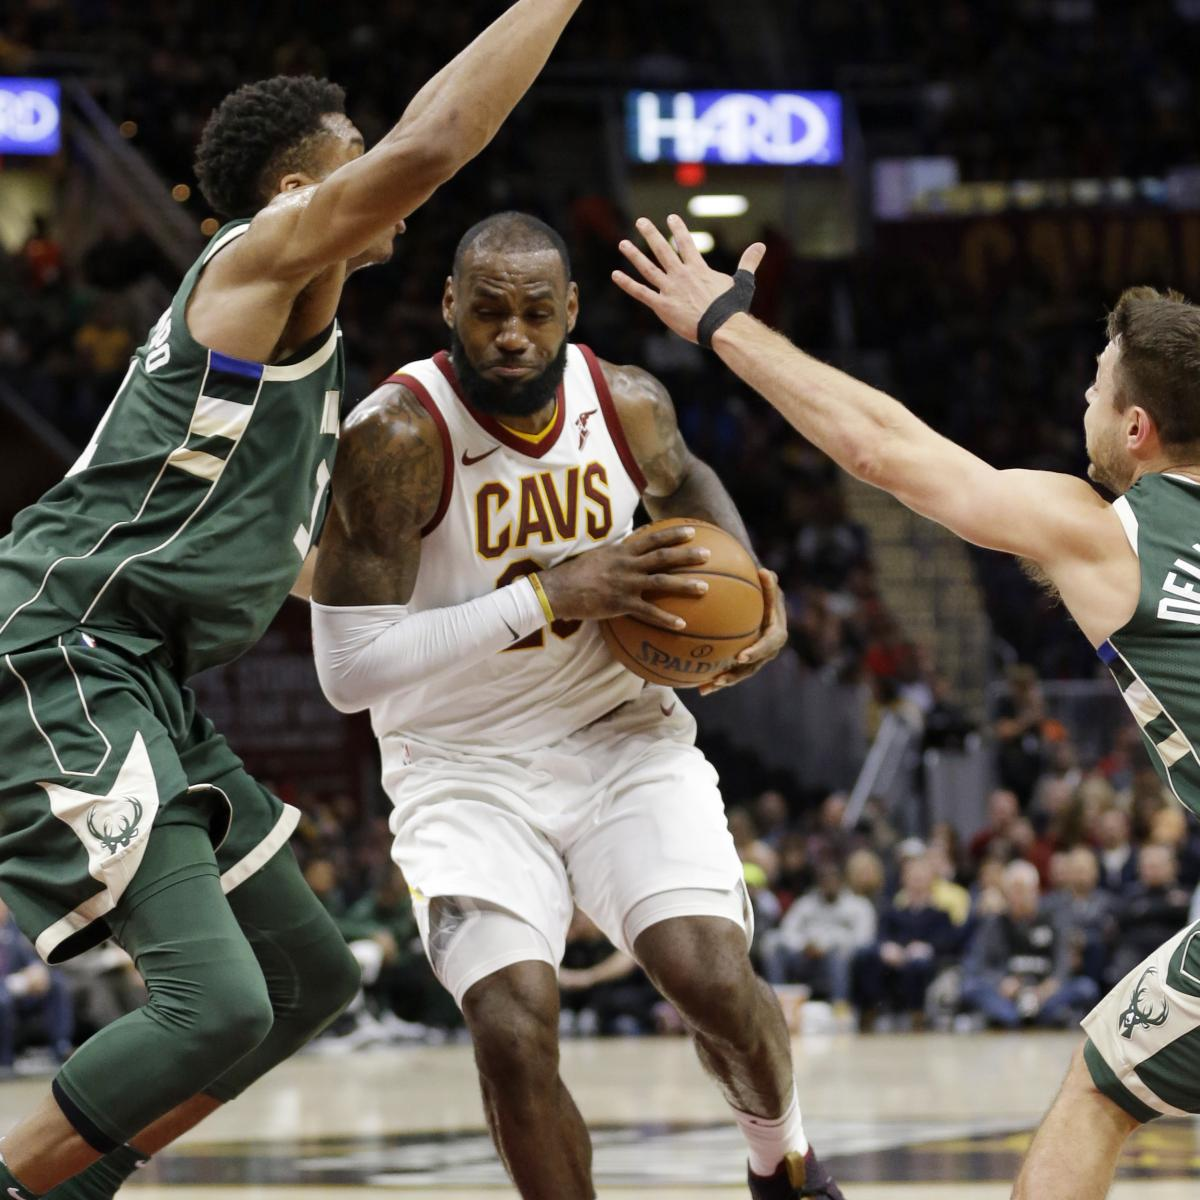 67525d3dcdf2a3 Giannis Antetokounmpo Scores 40 in Bucks Loss to LeBron James, Cavaliers |  Bleacher Report | Latest News, Videos and Highlights